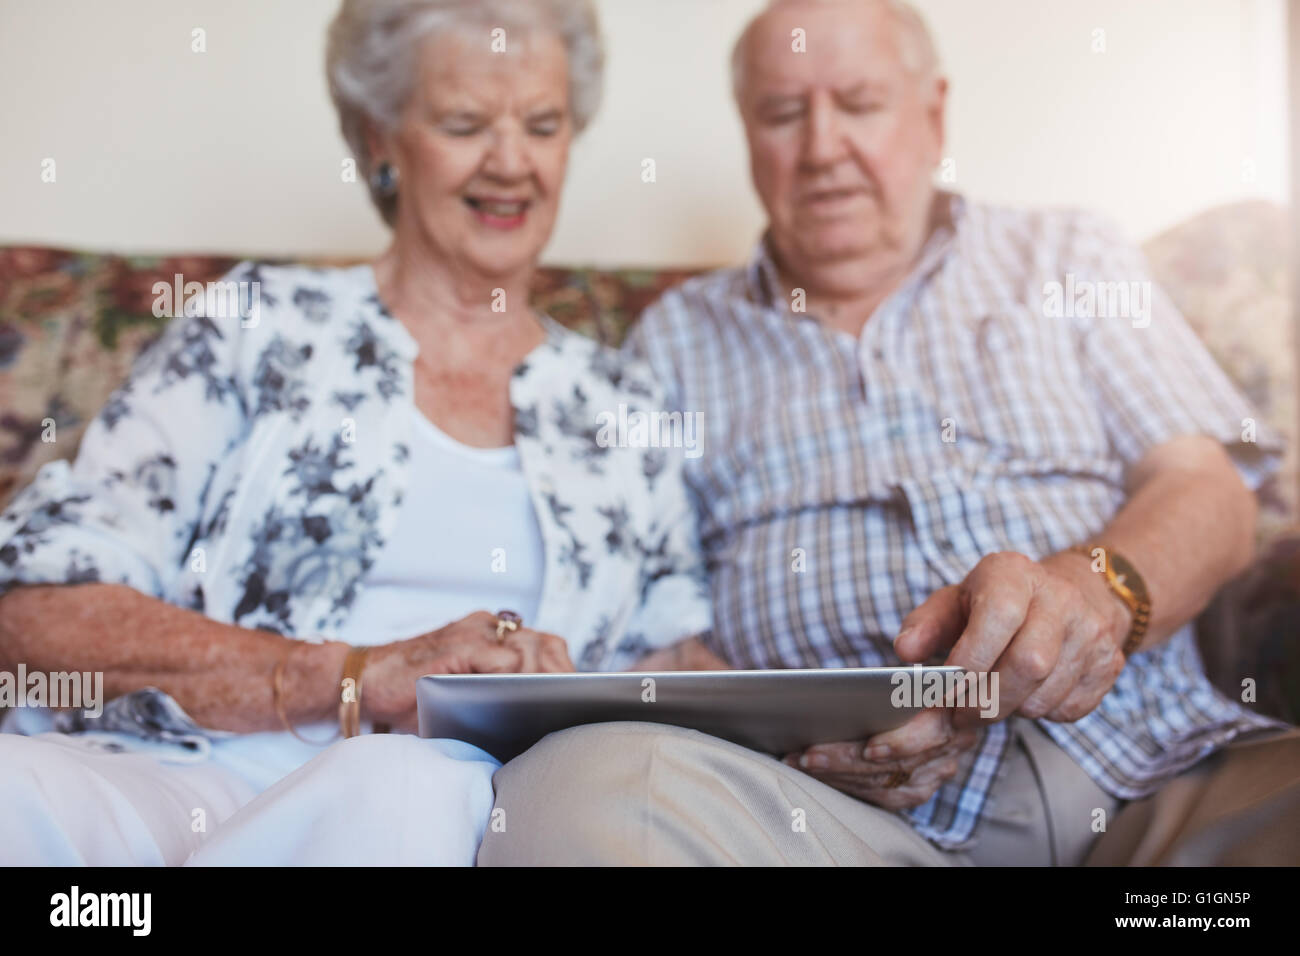 Portrait of happy senior couple sitting together at home and using digital tablet. Elderly man and woman sitting - Stock Image